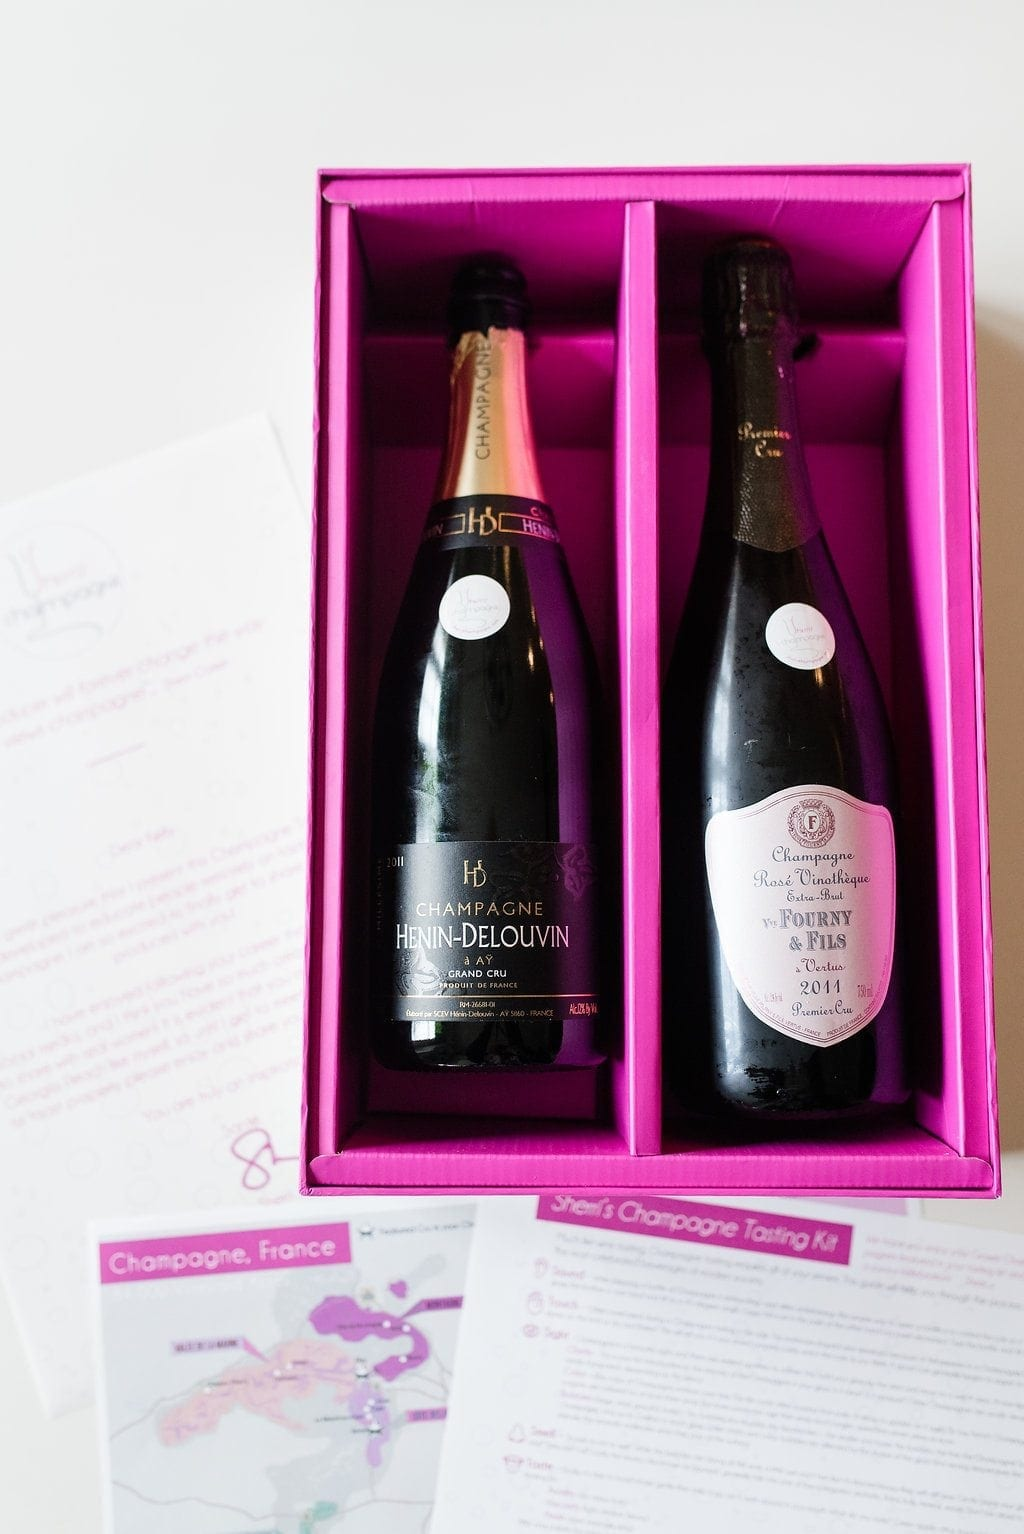 Grower producer champagne. Hard to get champagne in the United States. Great gift idea for wine lovers.